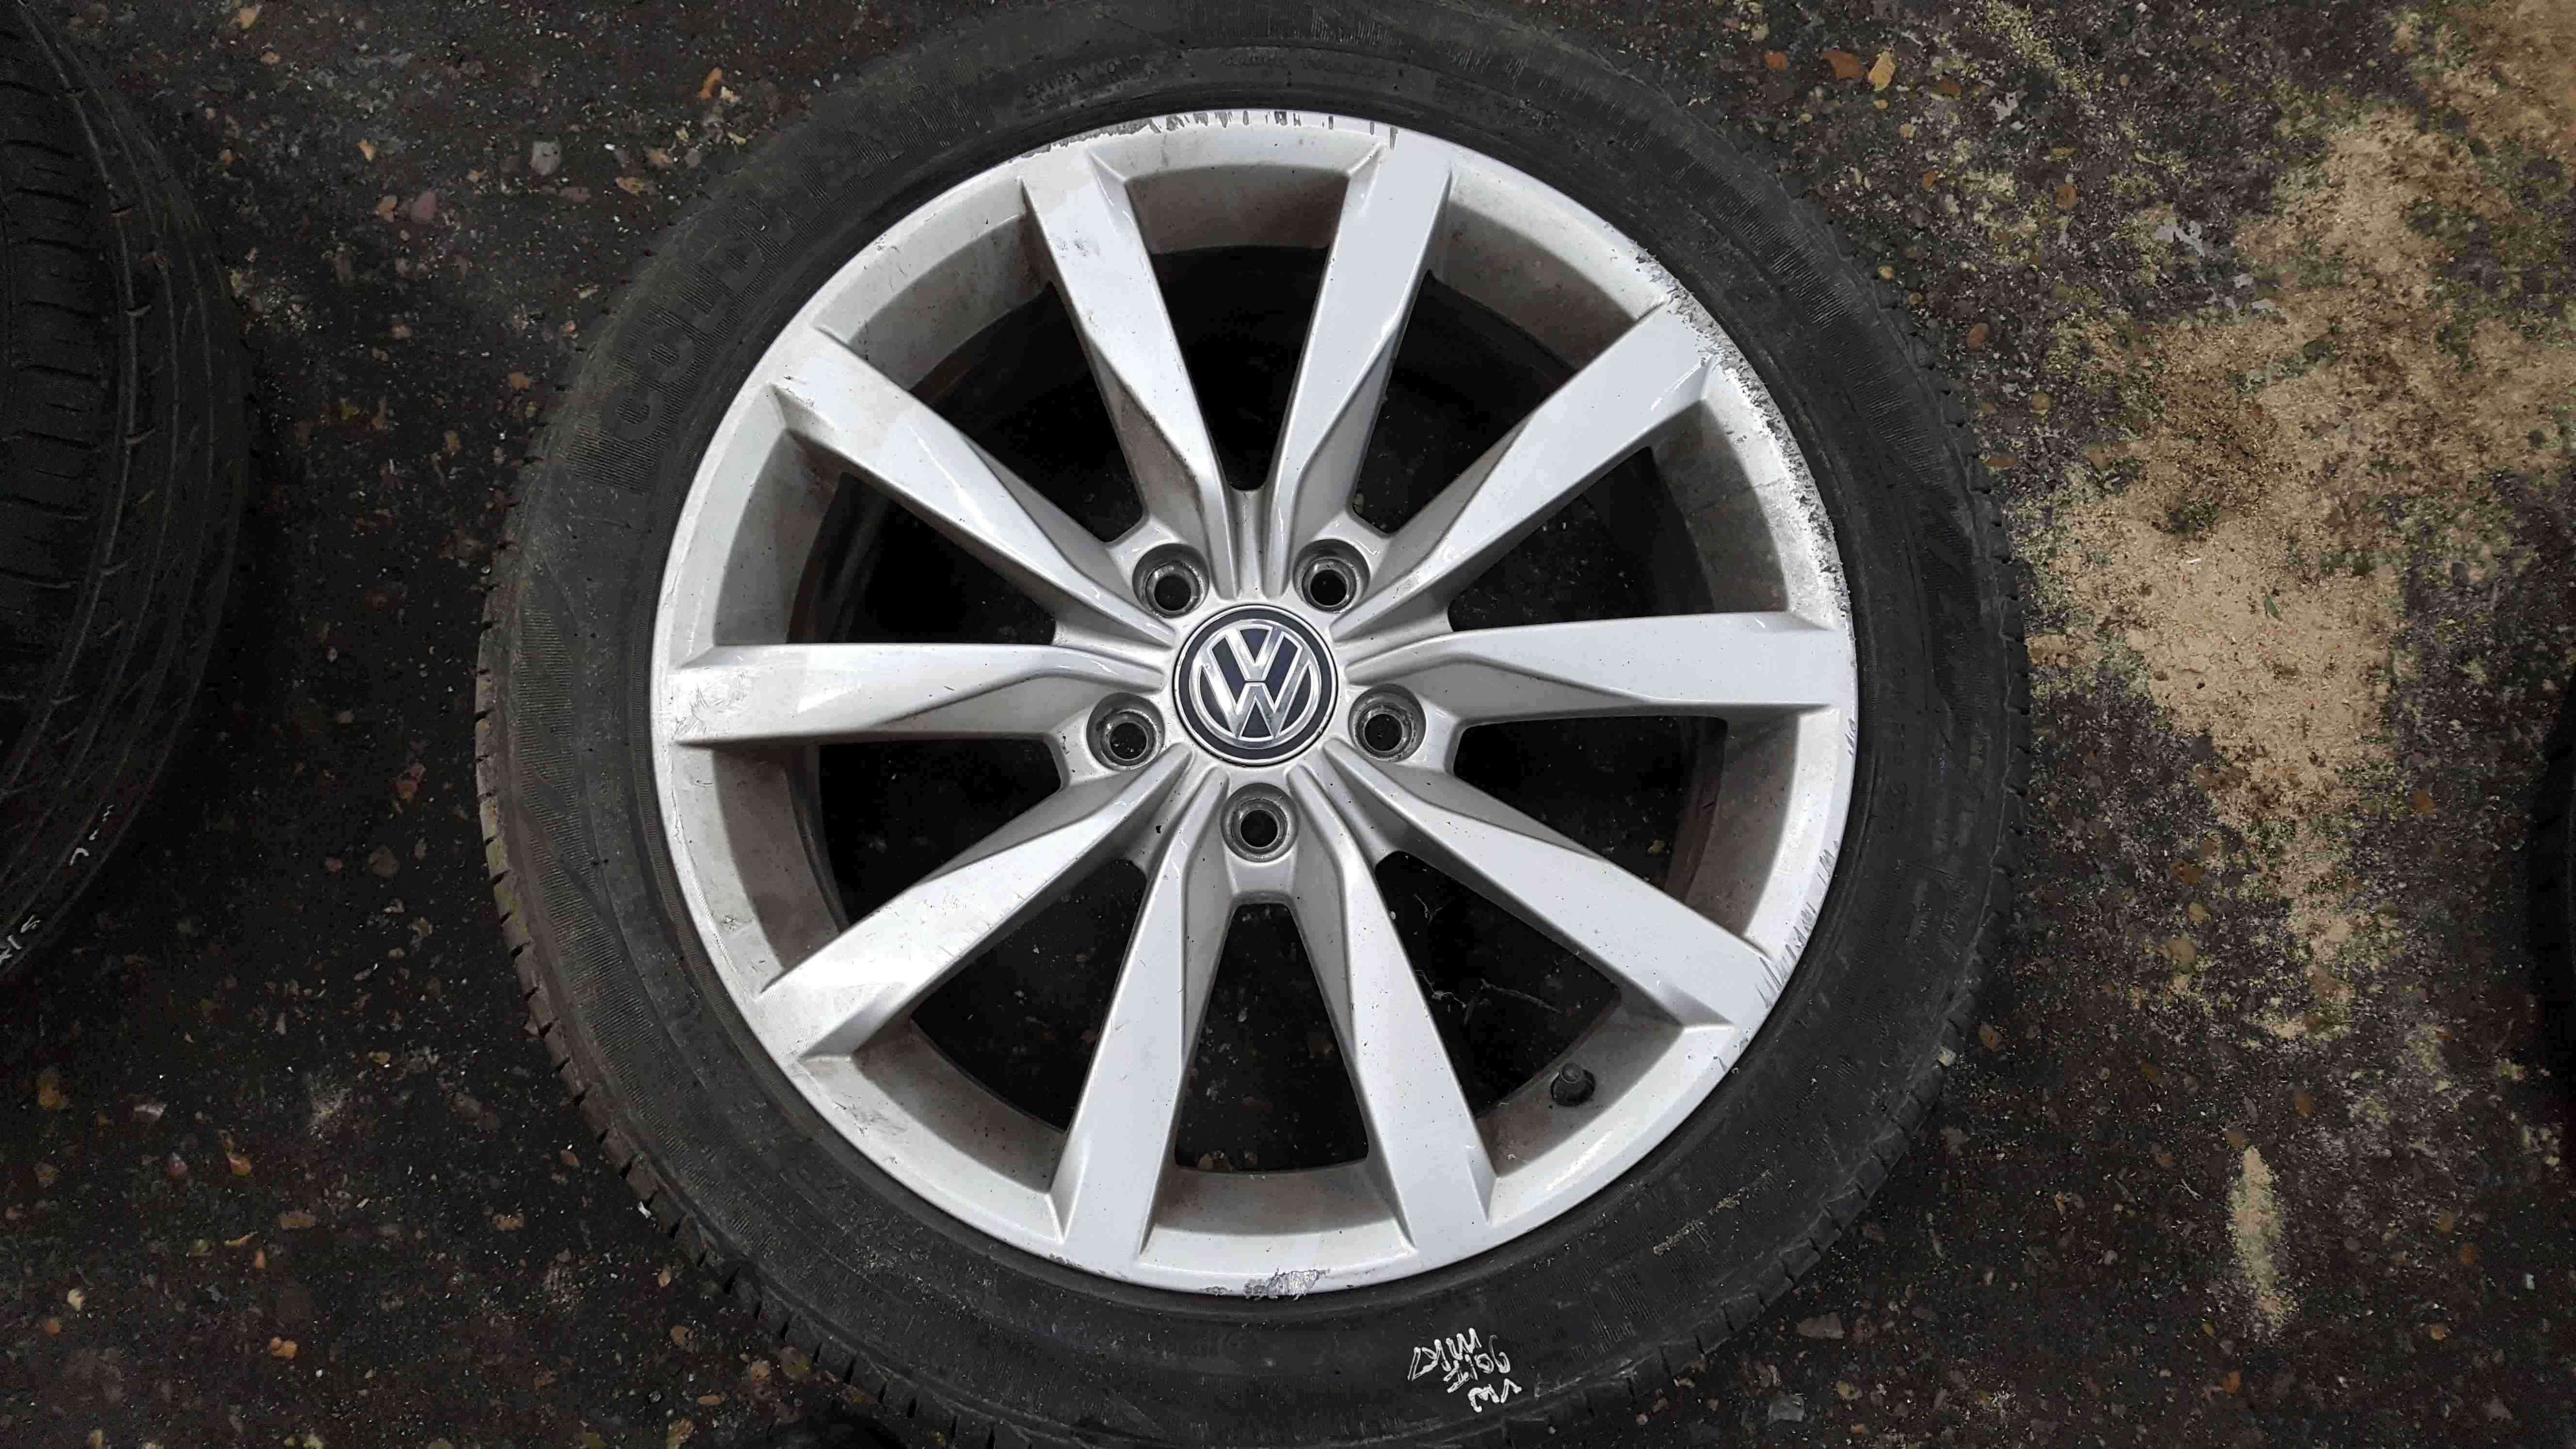 Volkswagen Golf MK7 2012-2017 Dijon Alloy Wheel 17inch 5G0601025CH